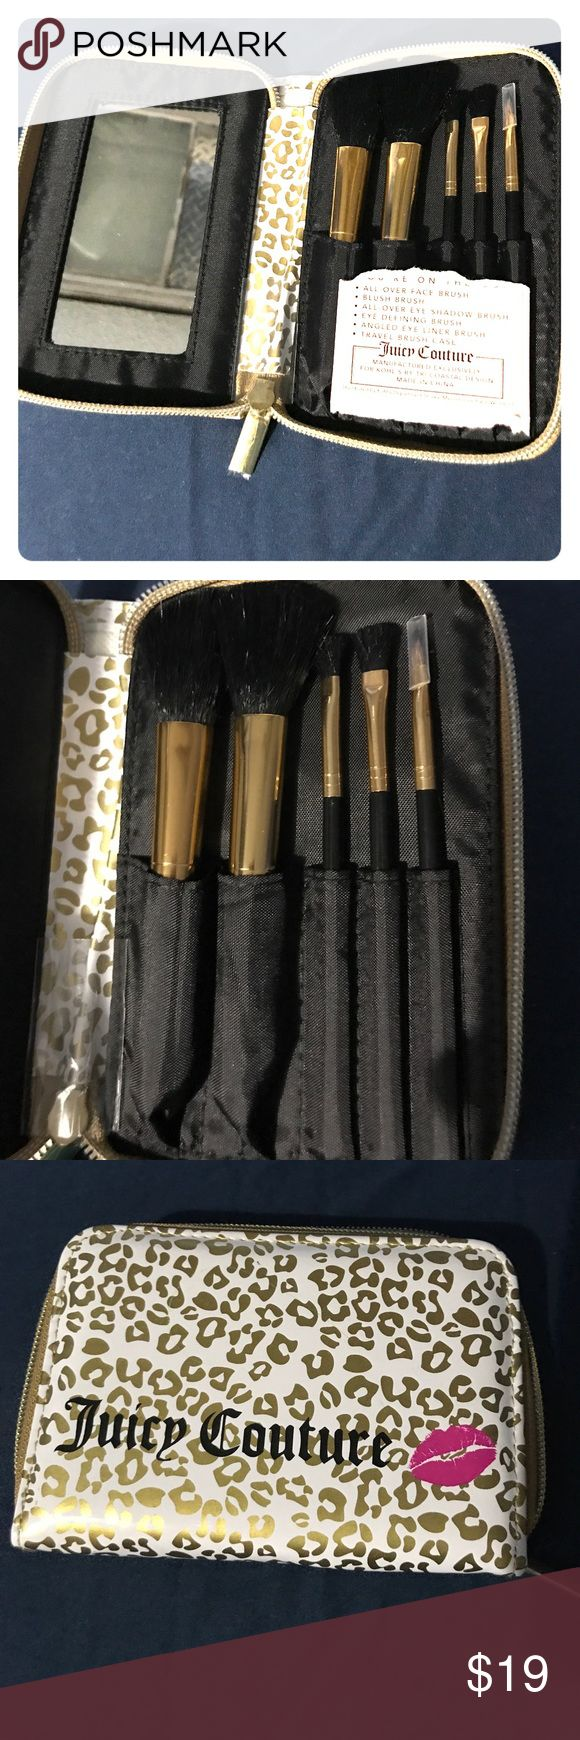 Juicy Couture Brush set Brand new and have never been used Juicy brushes come in travel brush case with mirror. Comes with 5 brushes: all over face brush, blush brush, all over eye shadow brush, eye defining brush, angled eye liner brush Juicy Couture Makeup Brushes & Tools